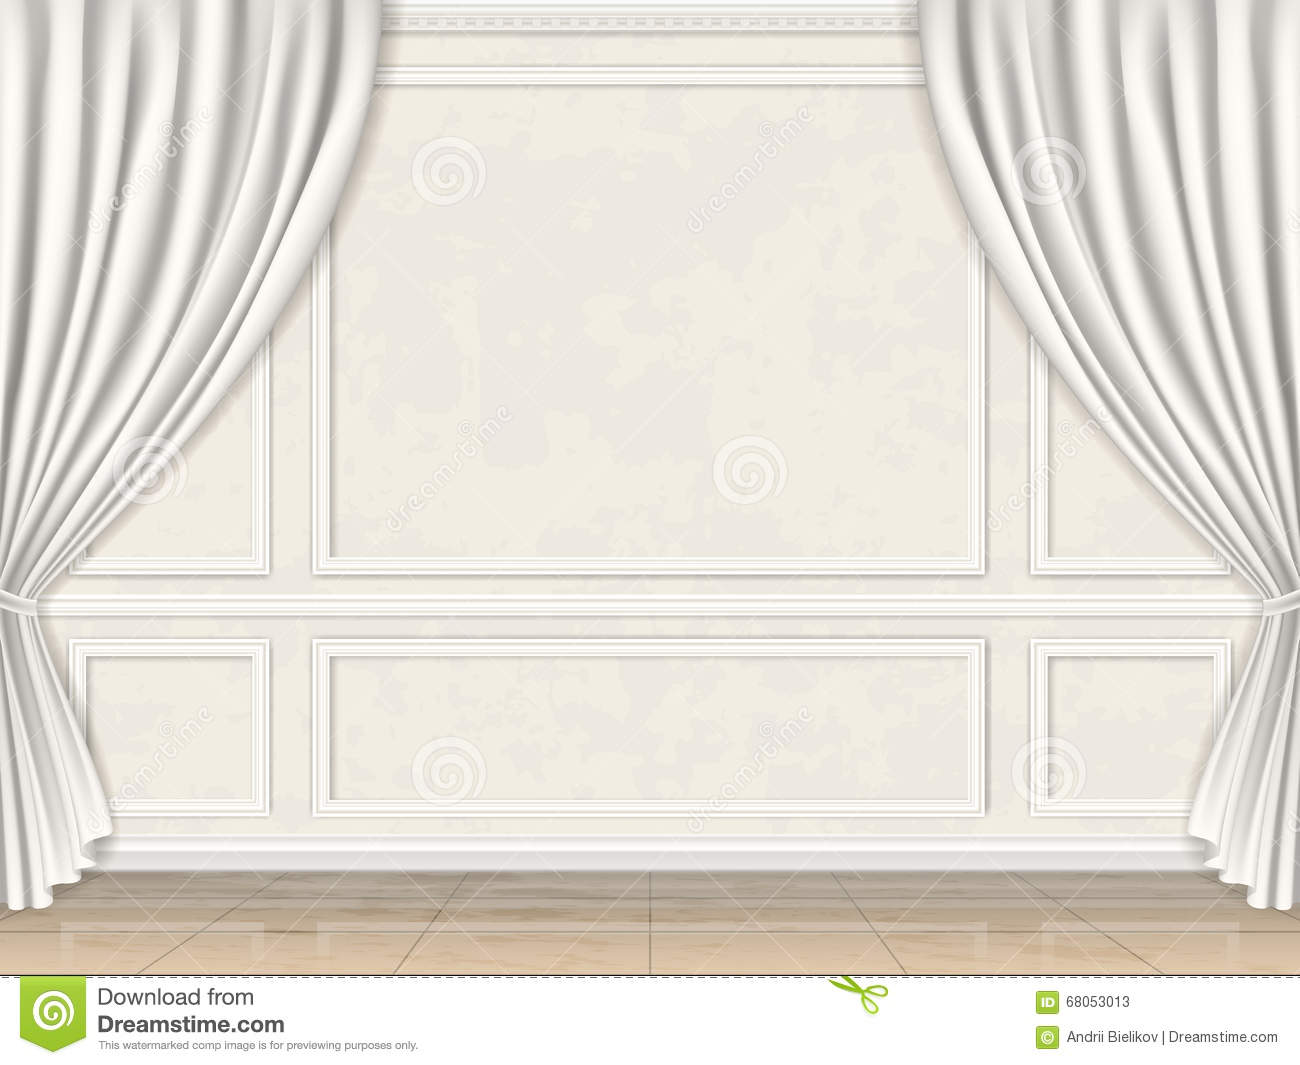 Wall Decorated Panel Mouldings And Curtains Stock Vector - Image ...